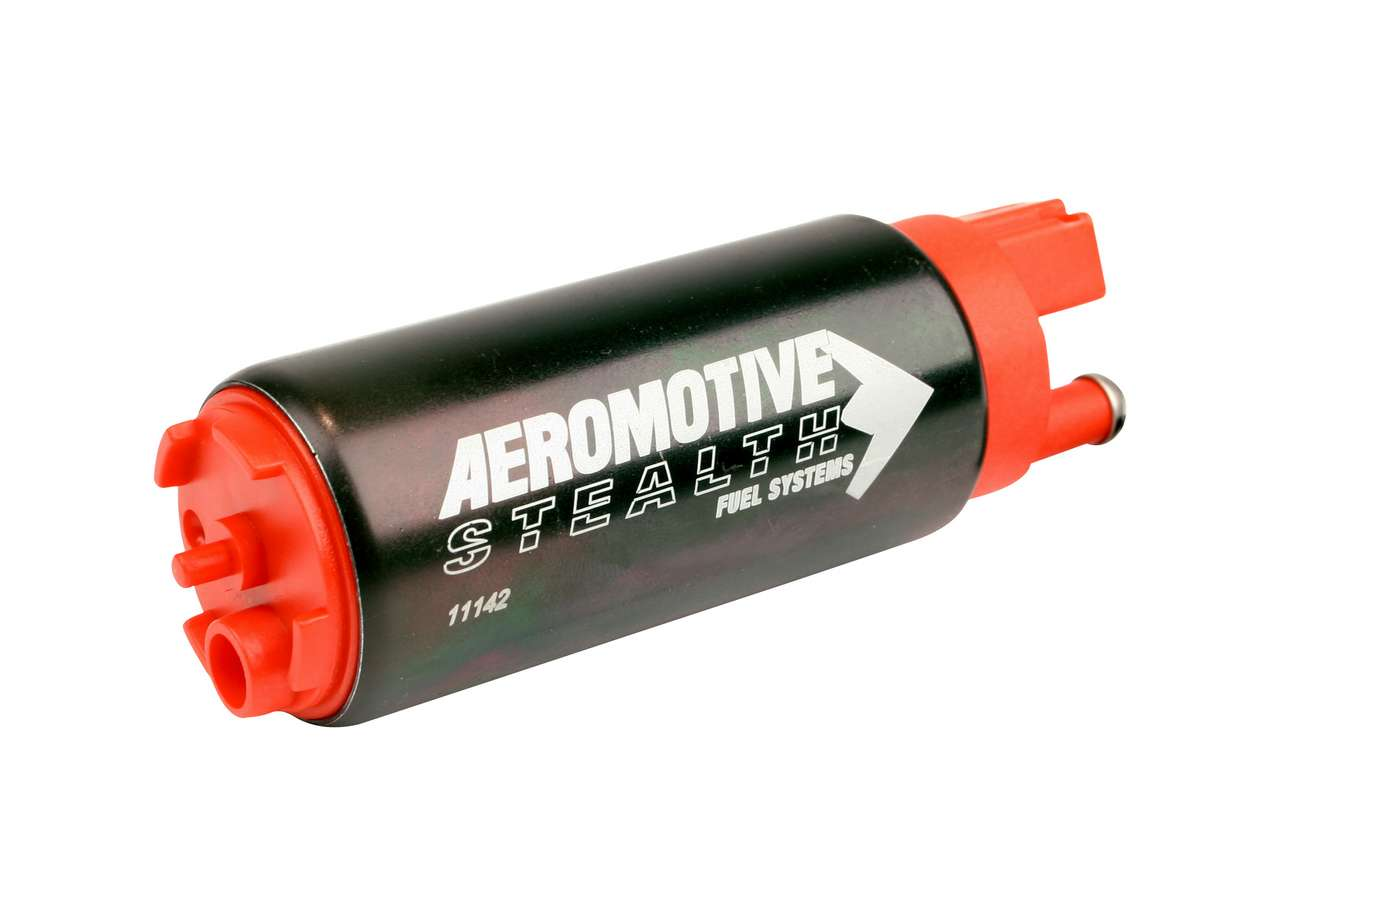 340 Stealth Fuel Pump - Superseded 07/11/16 VD - DISCONTINUED